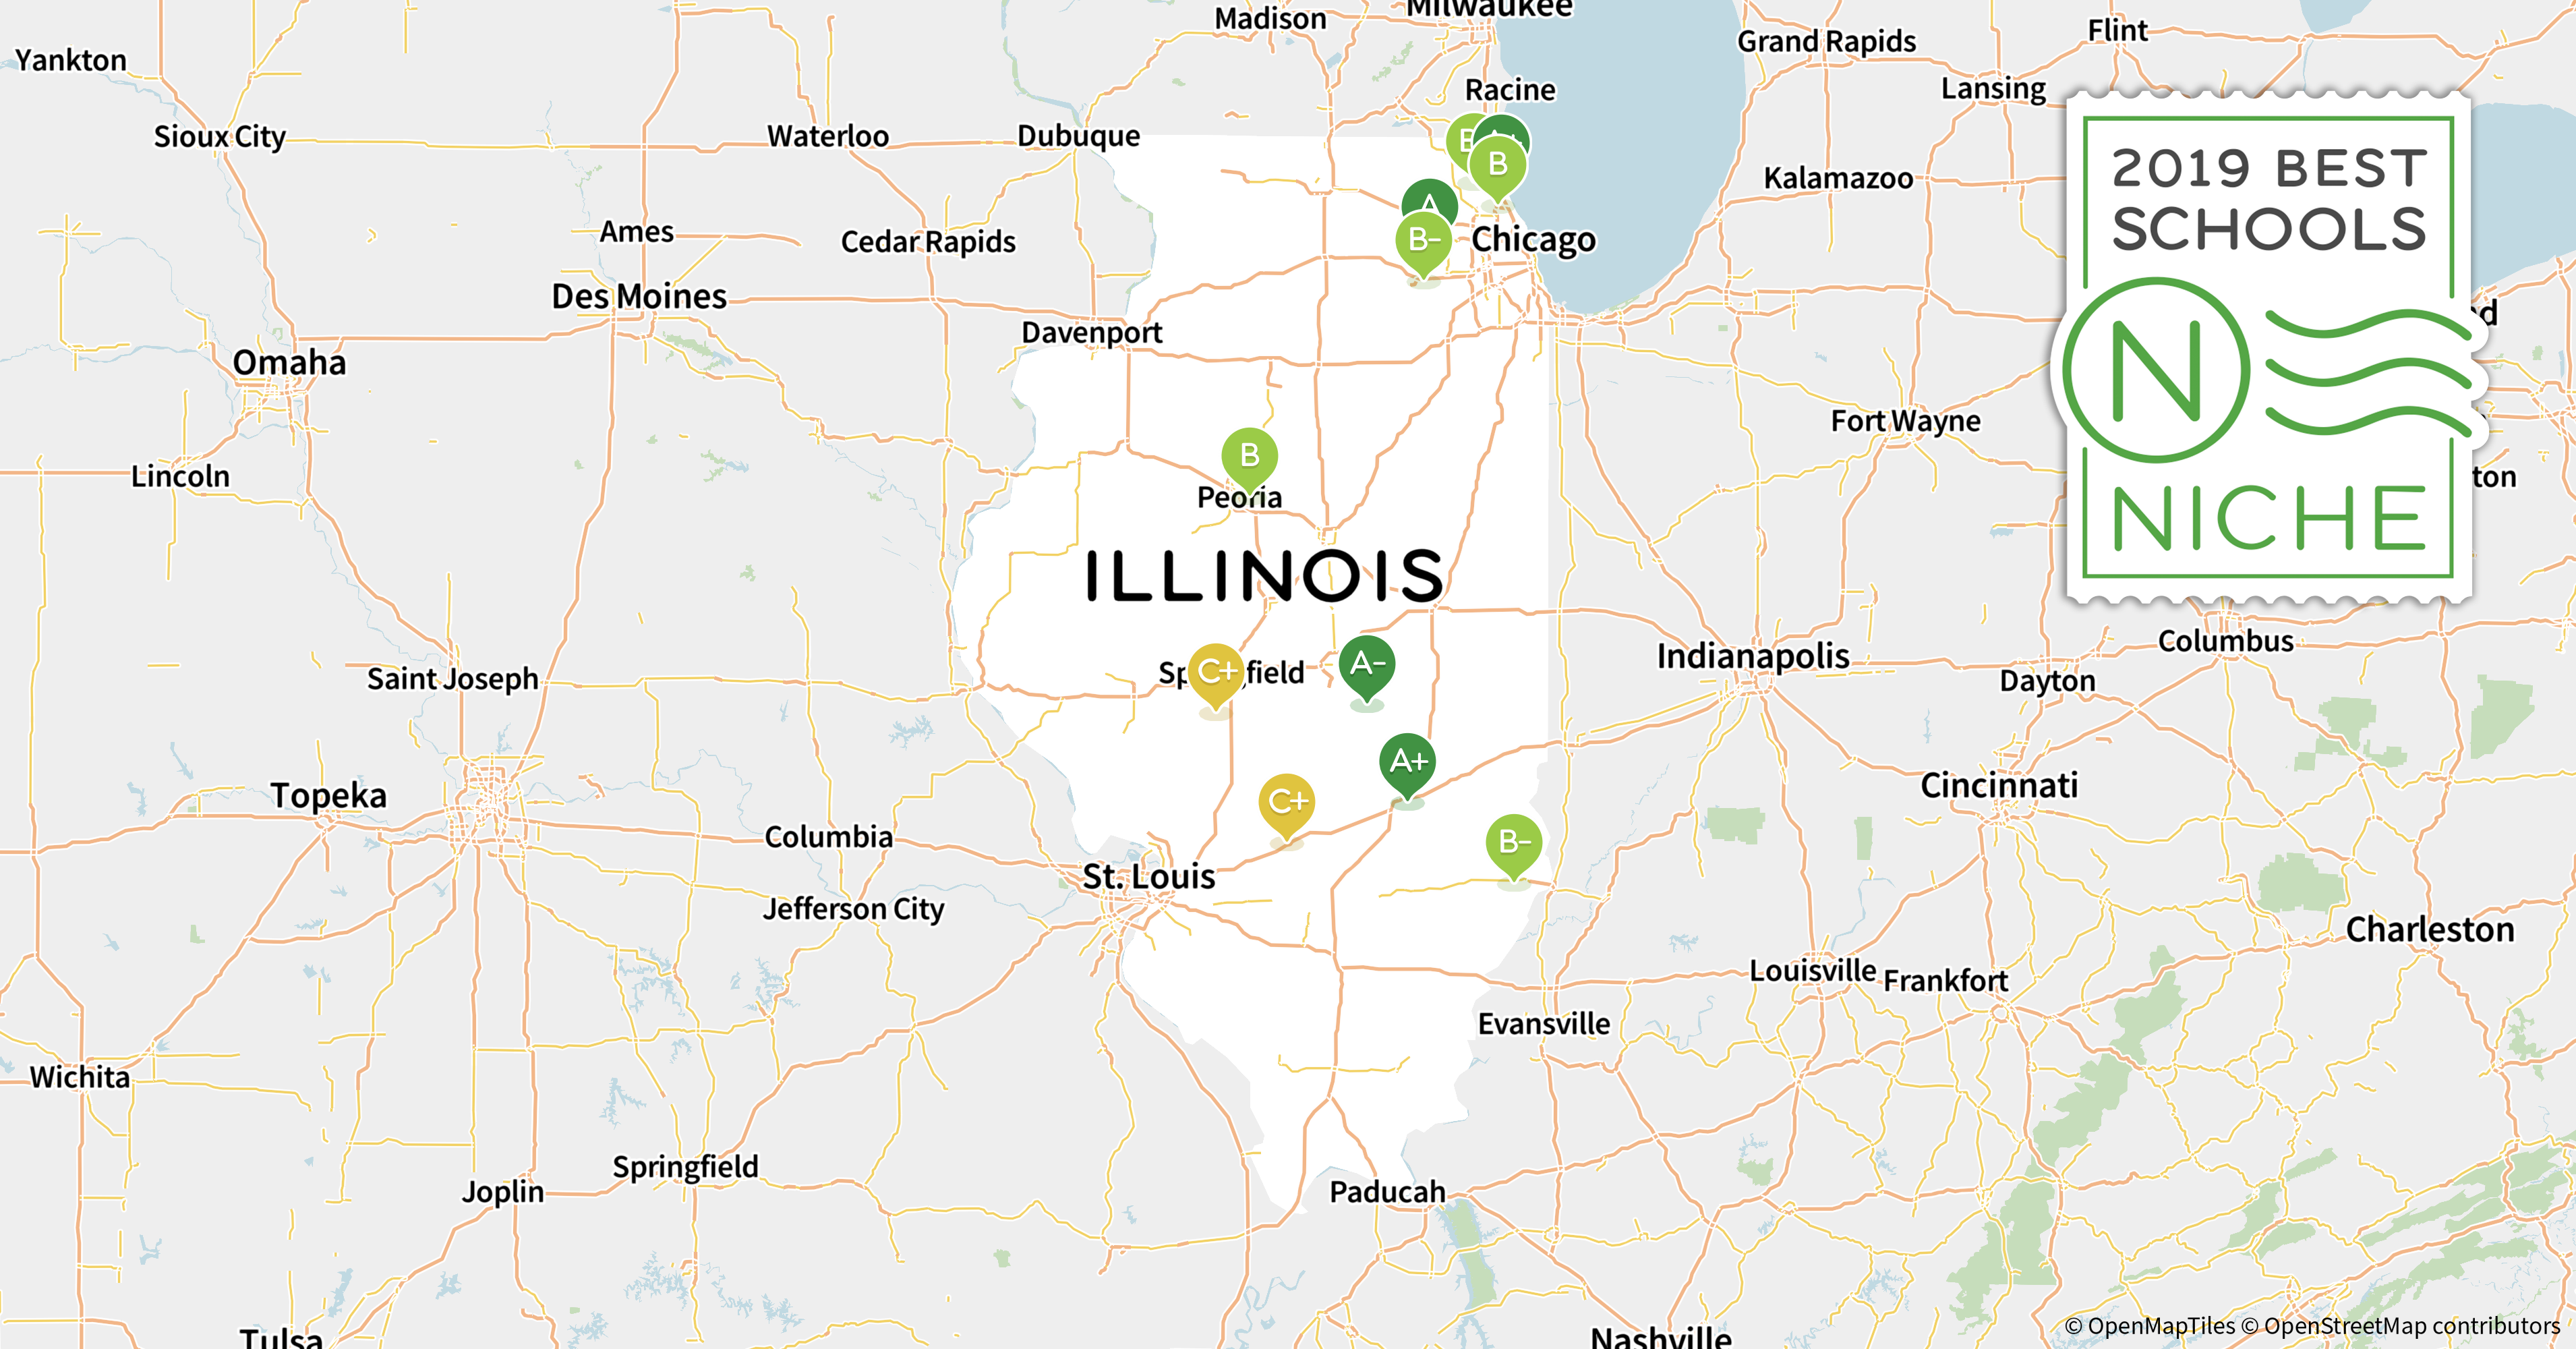 Southern Illinois Map With Cities.2019 Best School Districts In Illinois Niche